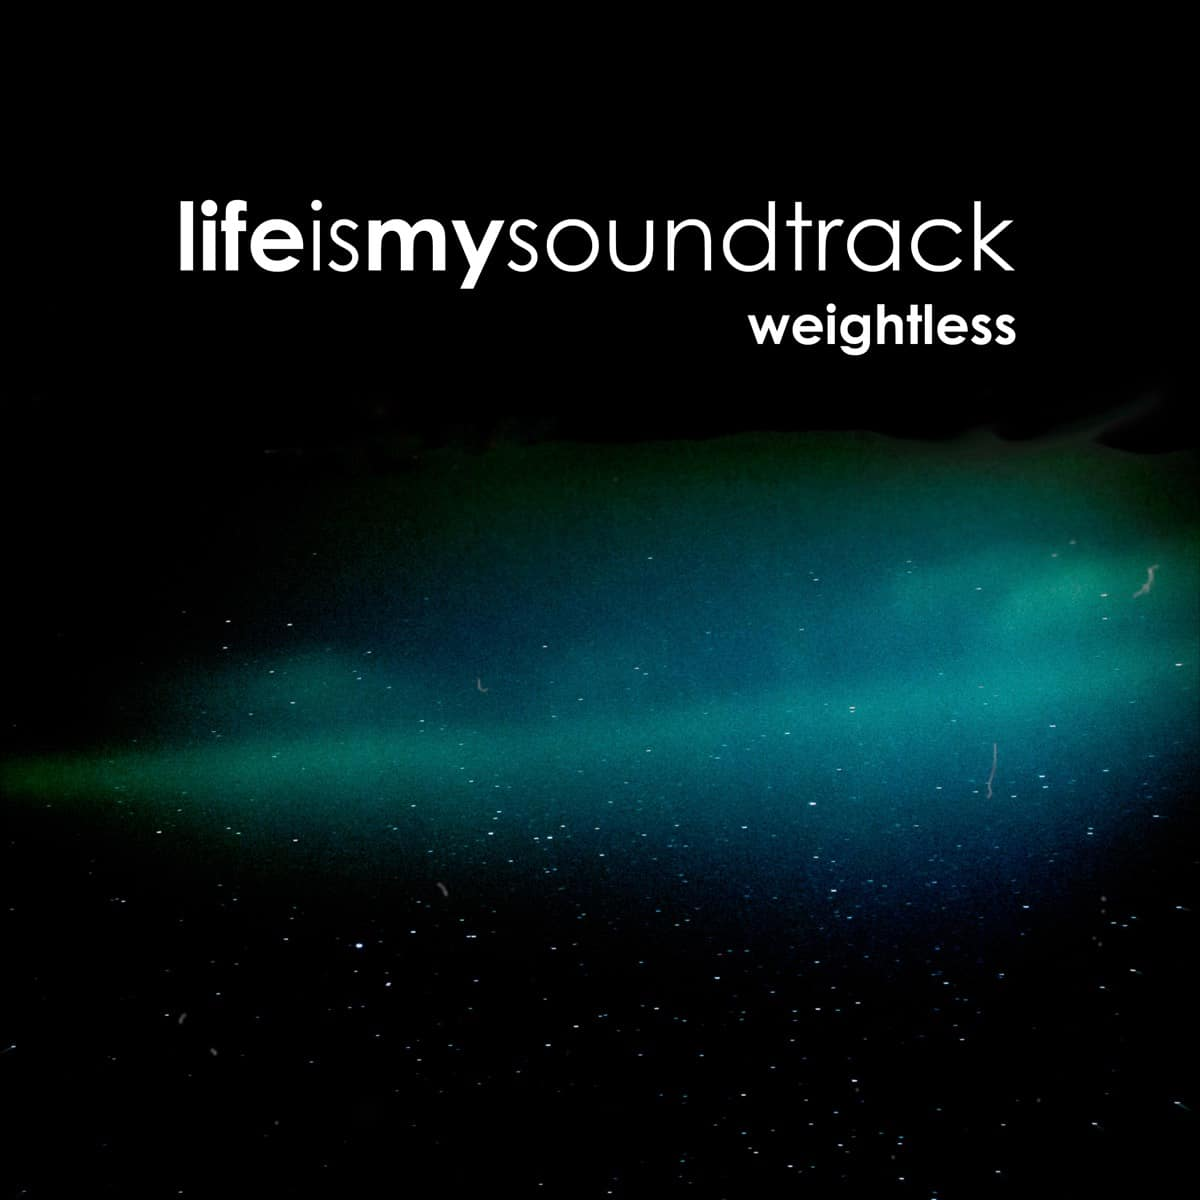 The album Weightless by Life Is My Soundtrack - Music inspired by the 1980's vision of the future of space exploration